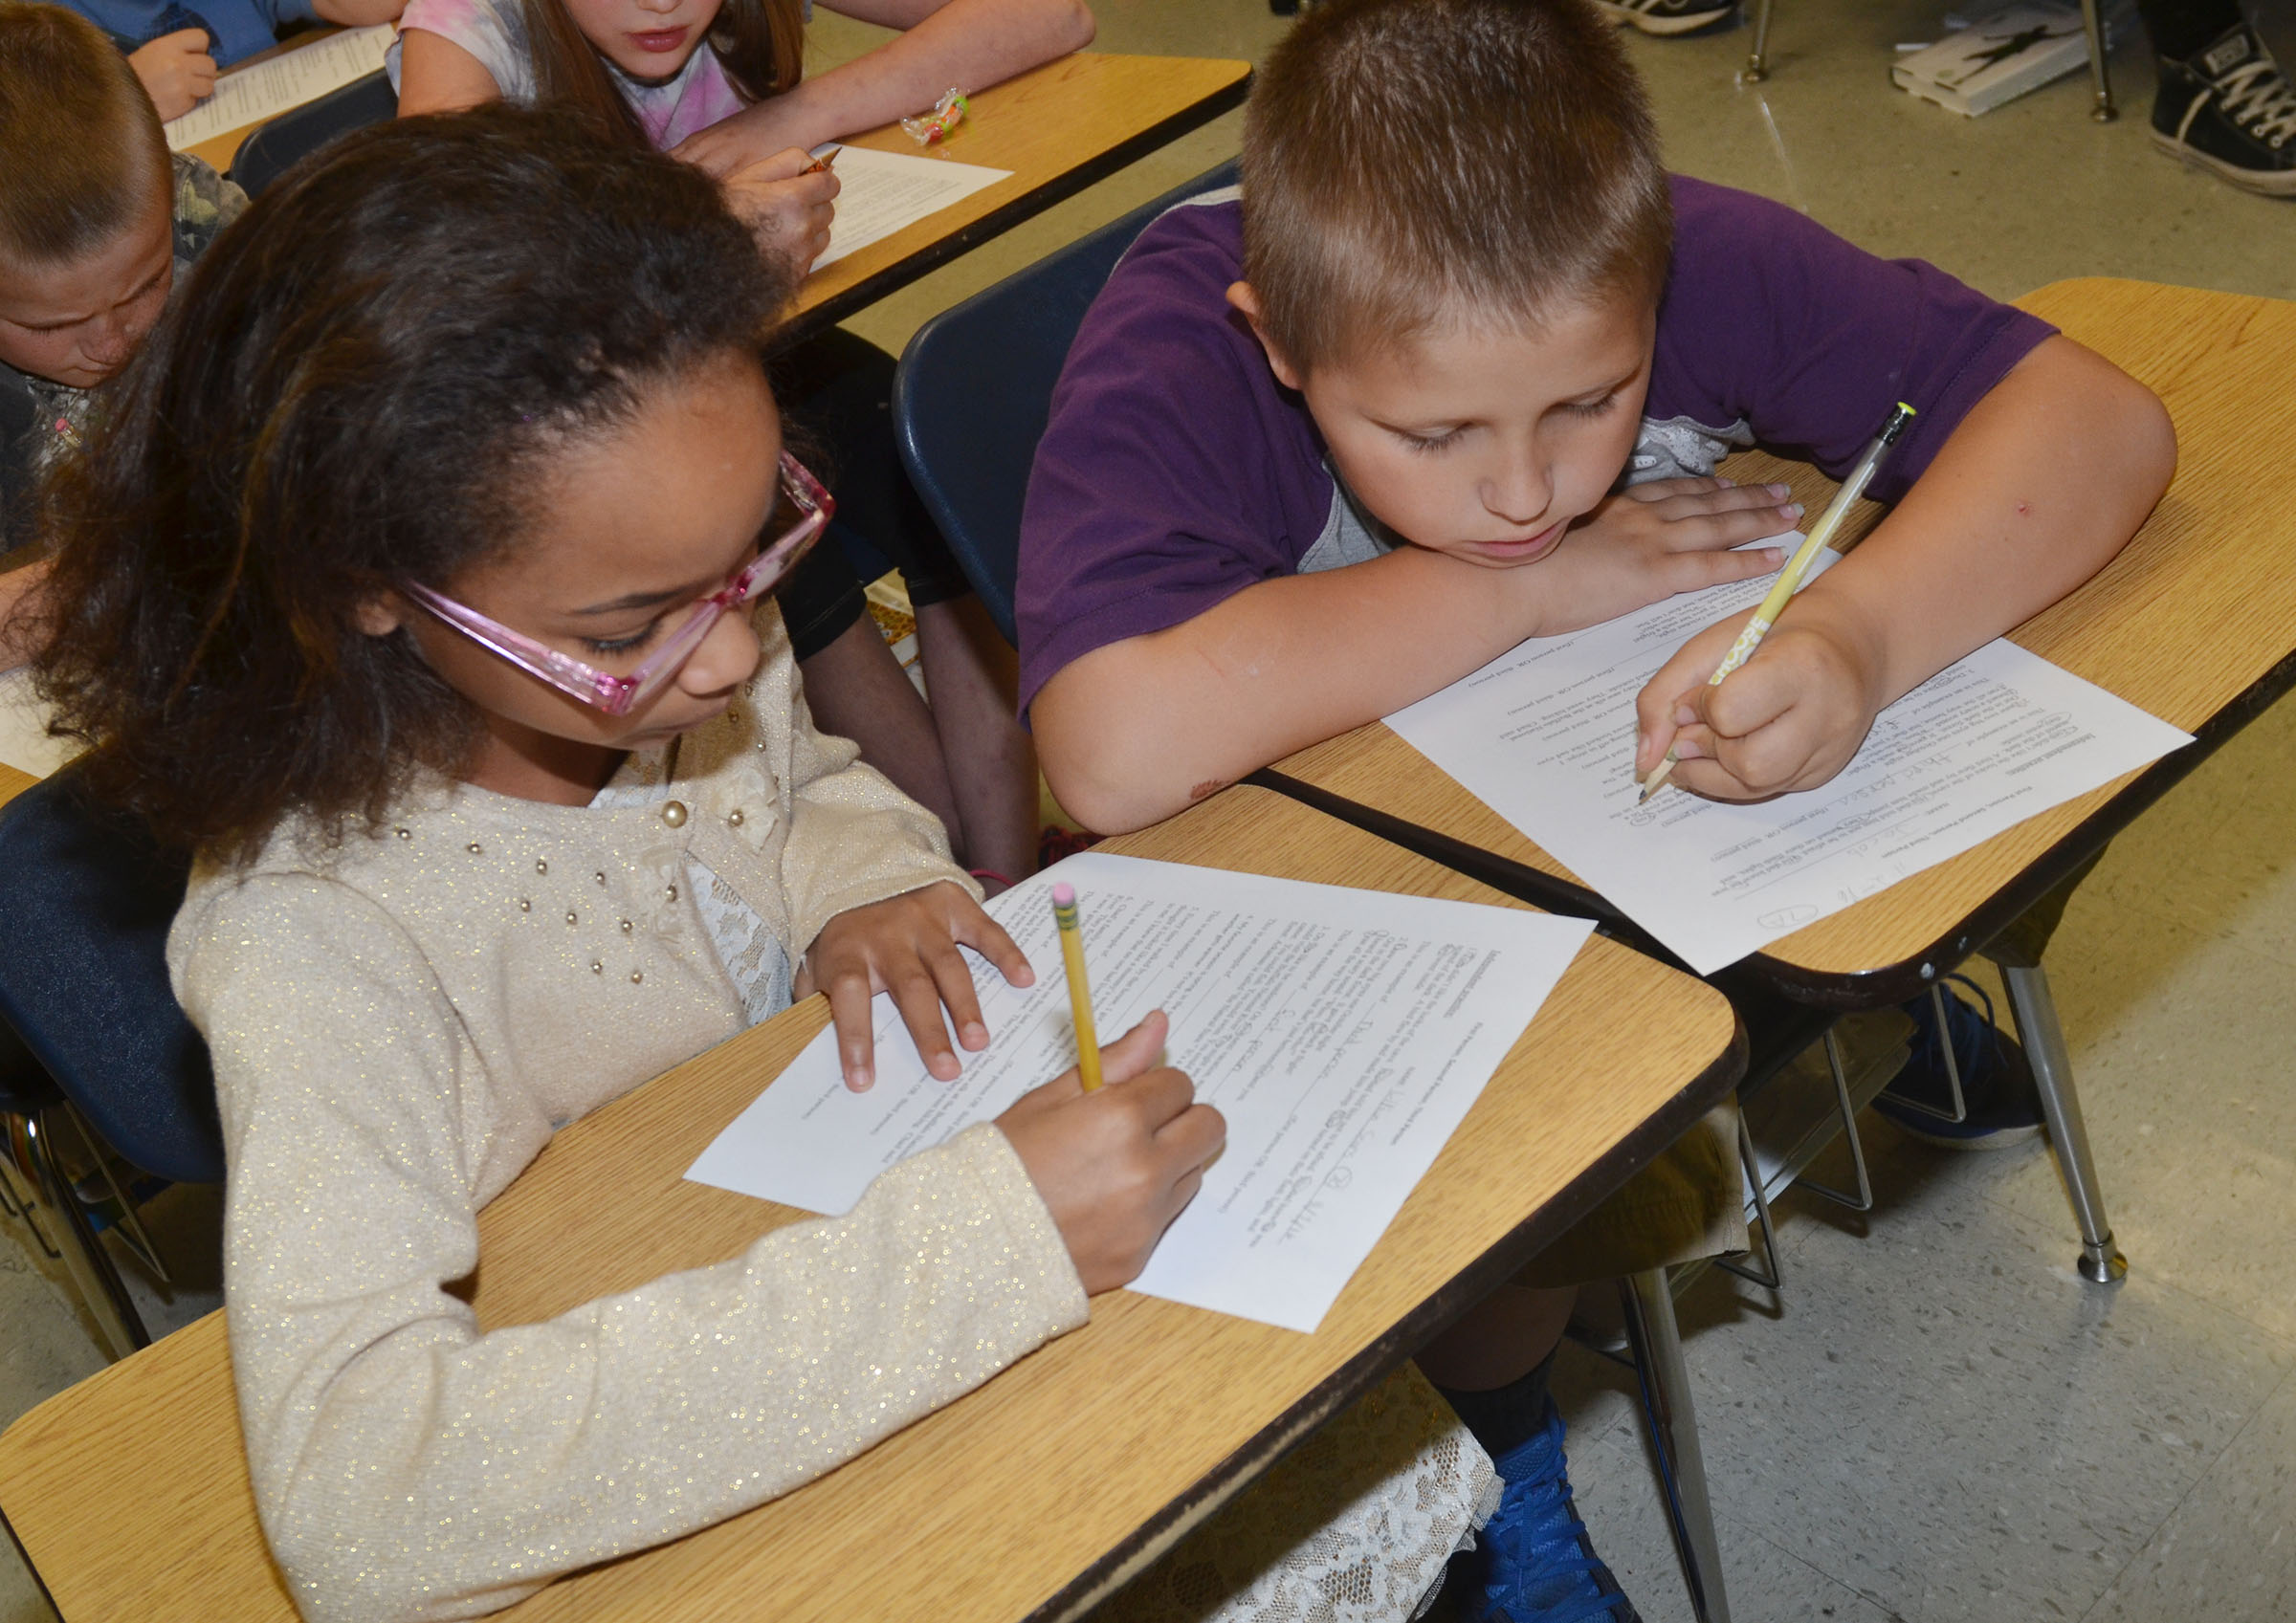 CMS fourth-graders Lillian Sears and Jacob Simpson read a passage to determine what point of view in which they believe it is written.